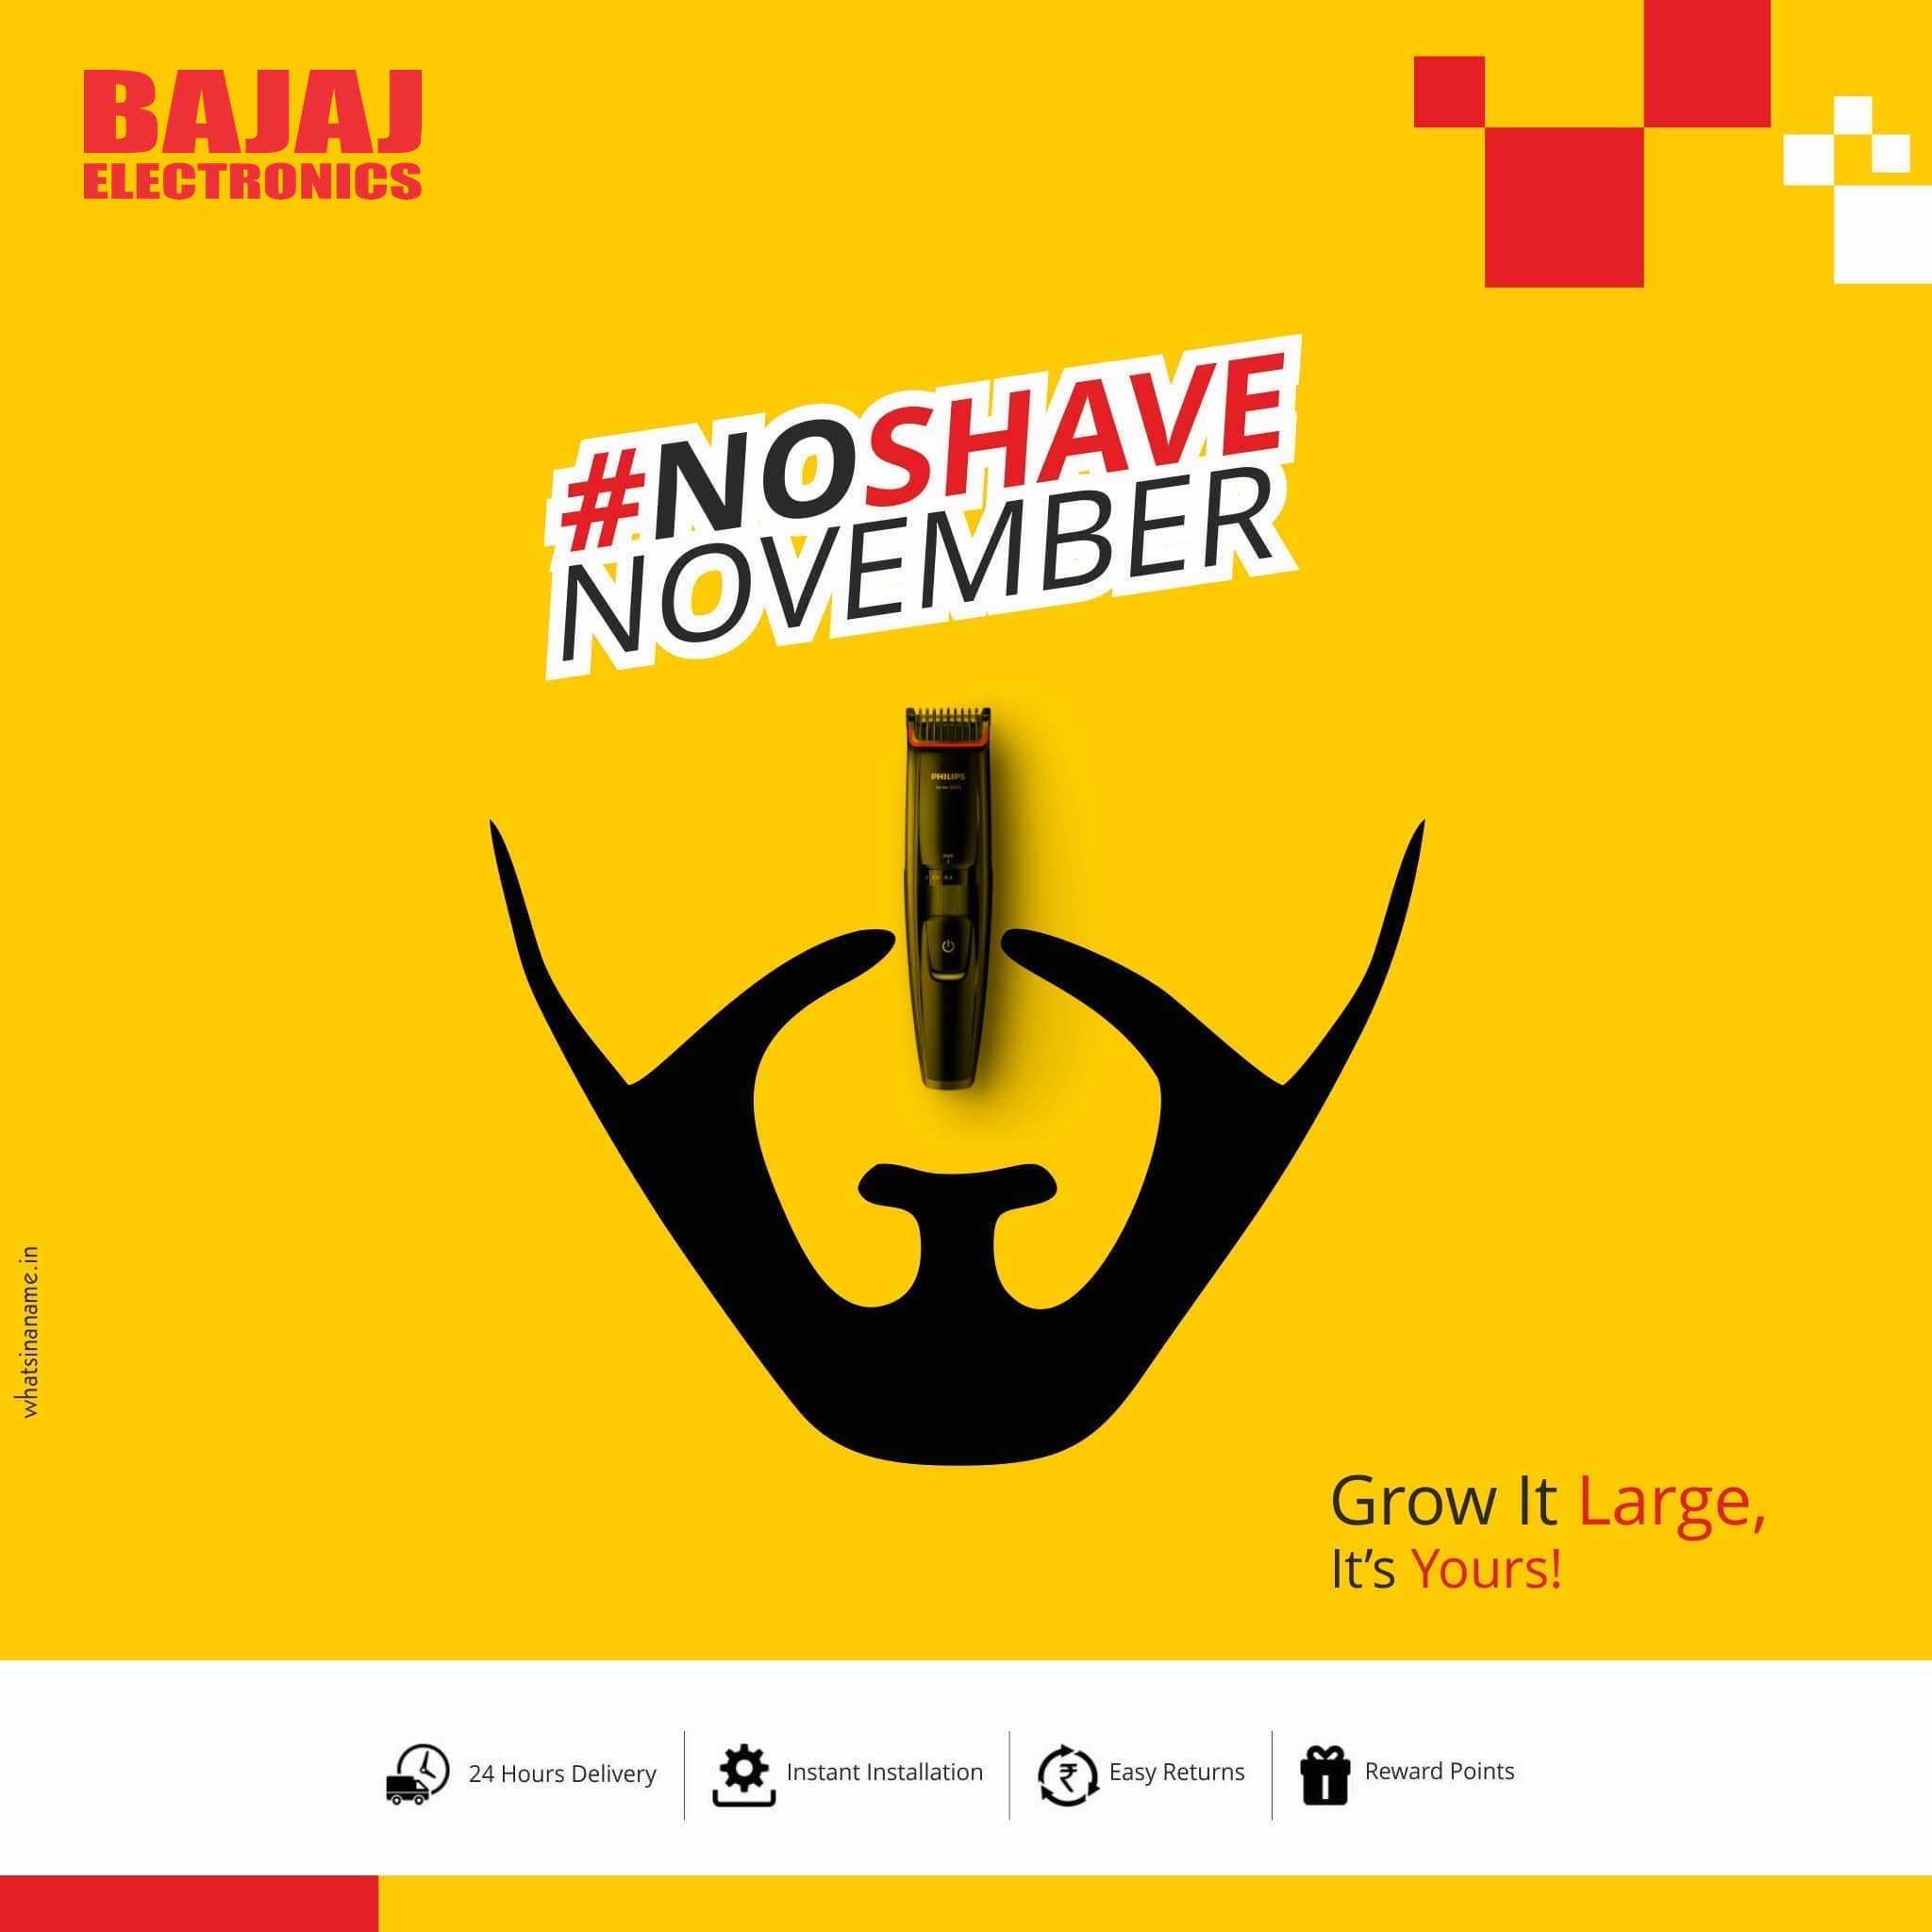 vunzap9t6cq-no-shave-november,-best-ad,-what's-in-a-name-creatives,-bajaj-electronics,-1